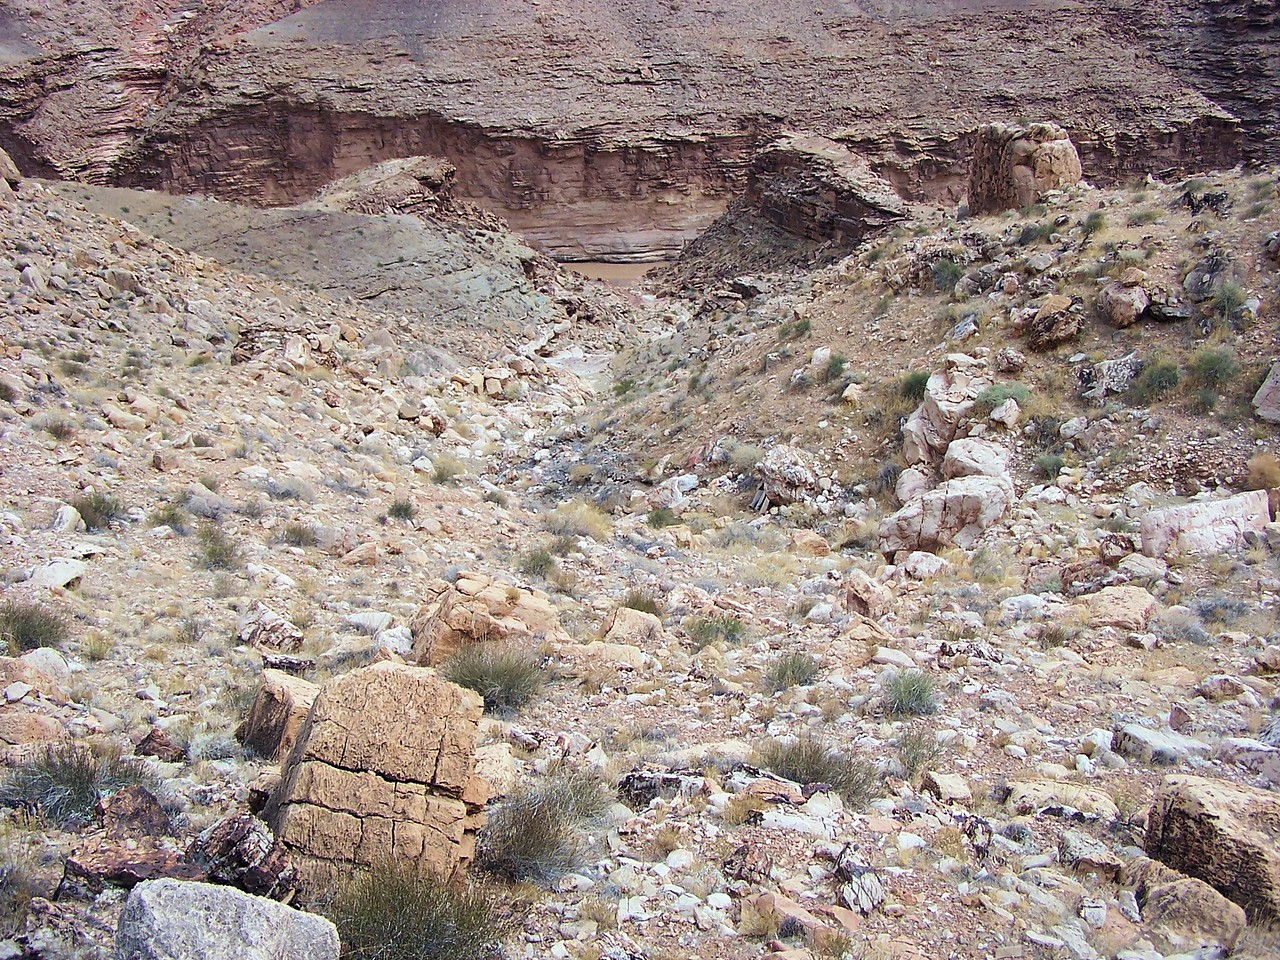 TWA FLIGHT 2 IMPACT SITE<br /> <br /> Looking down into the ravine from the north slope. This was the point of impact for TWA Flight 2. <br /> <br /> Many of the rocks and boulders were displaced in this location and also displayed evidence of impact scarring. <br /> <br /> From this location the aircraft continued to disintegrate only a short distance to the bottom of the ravine.